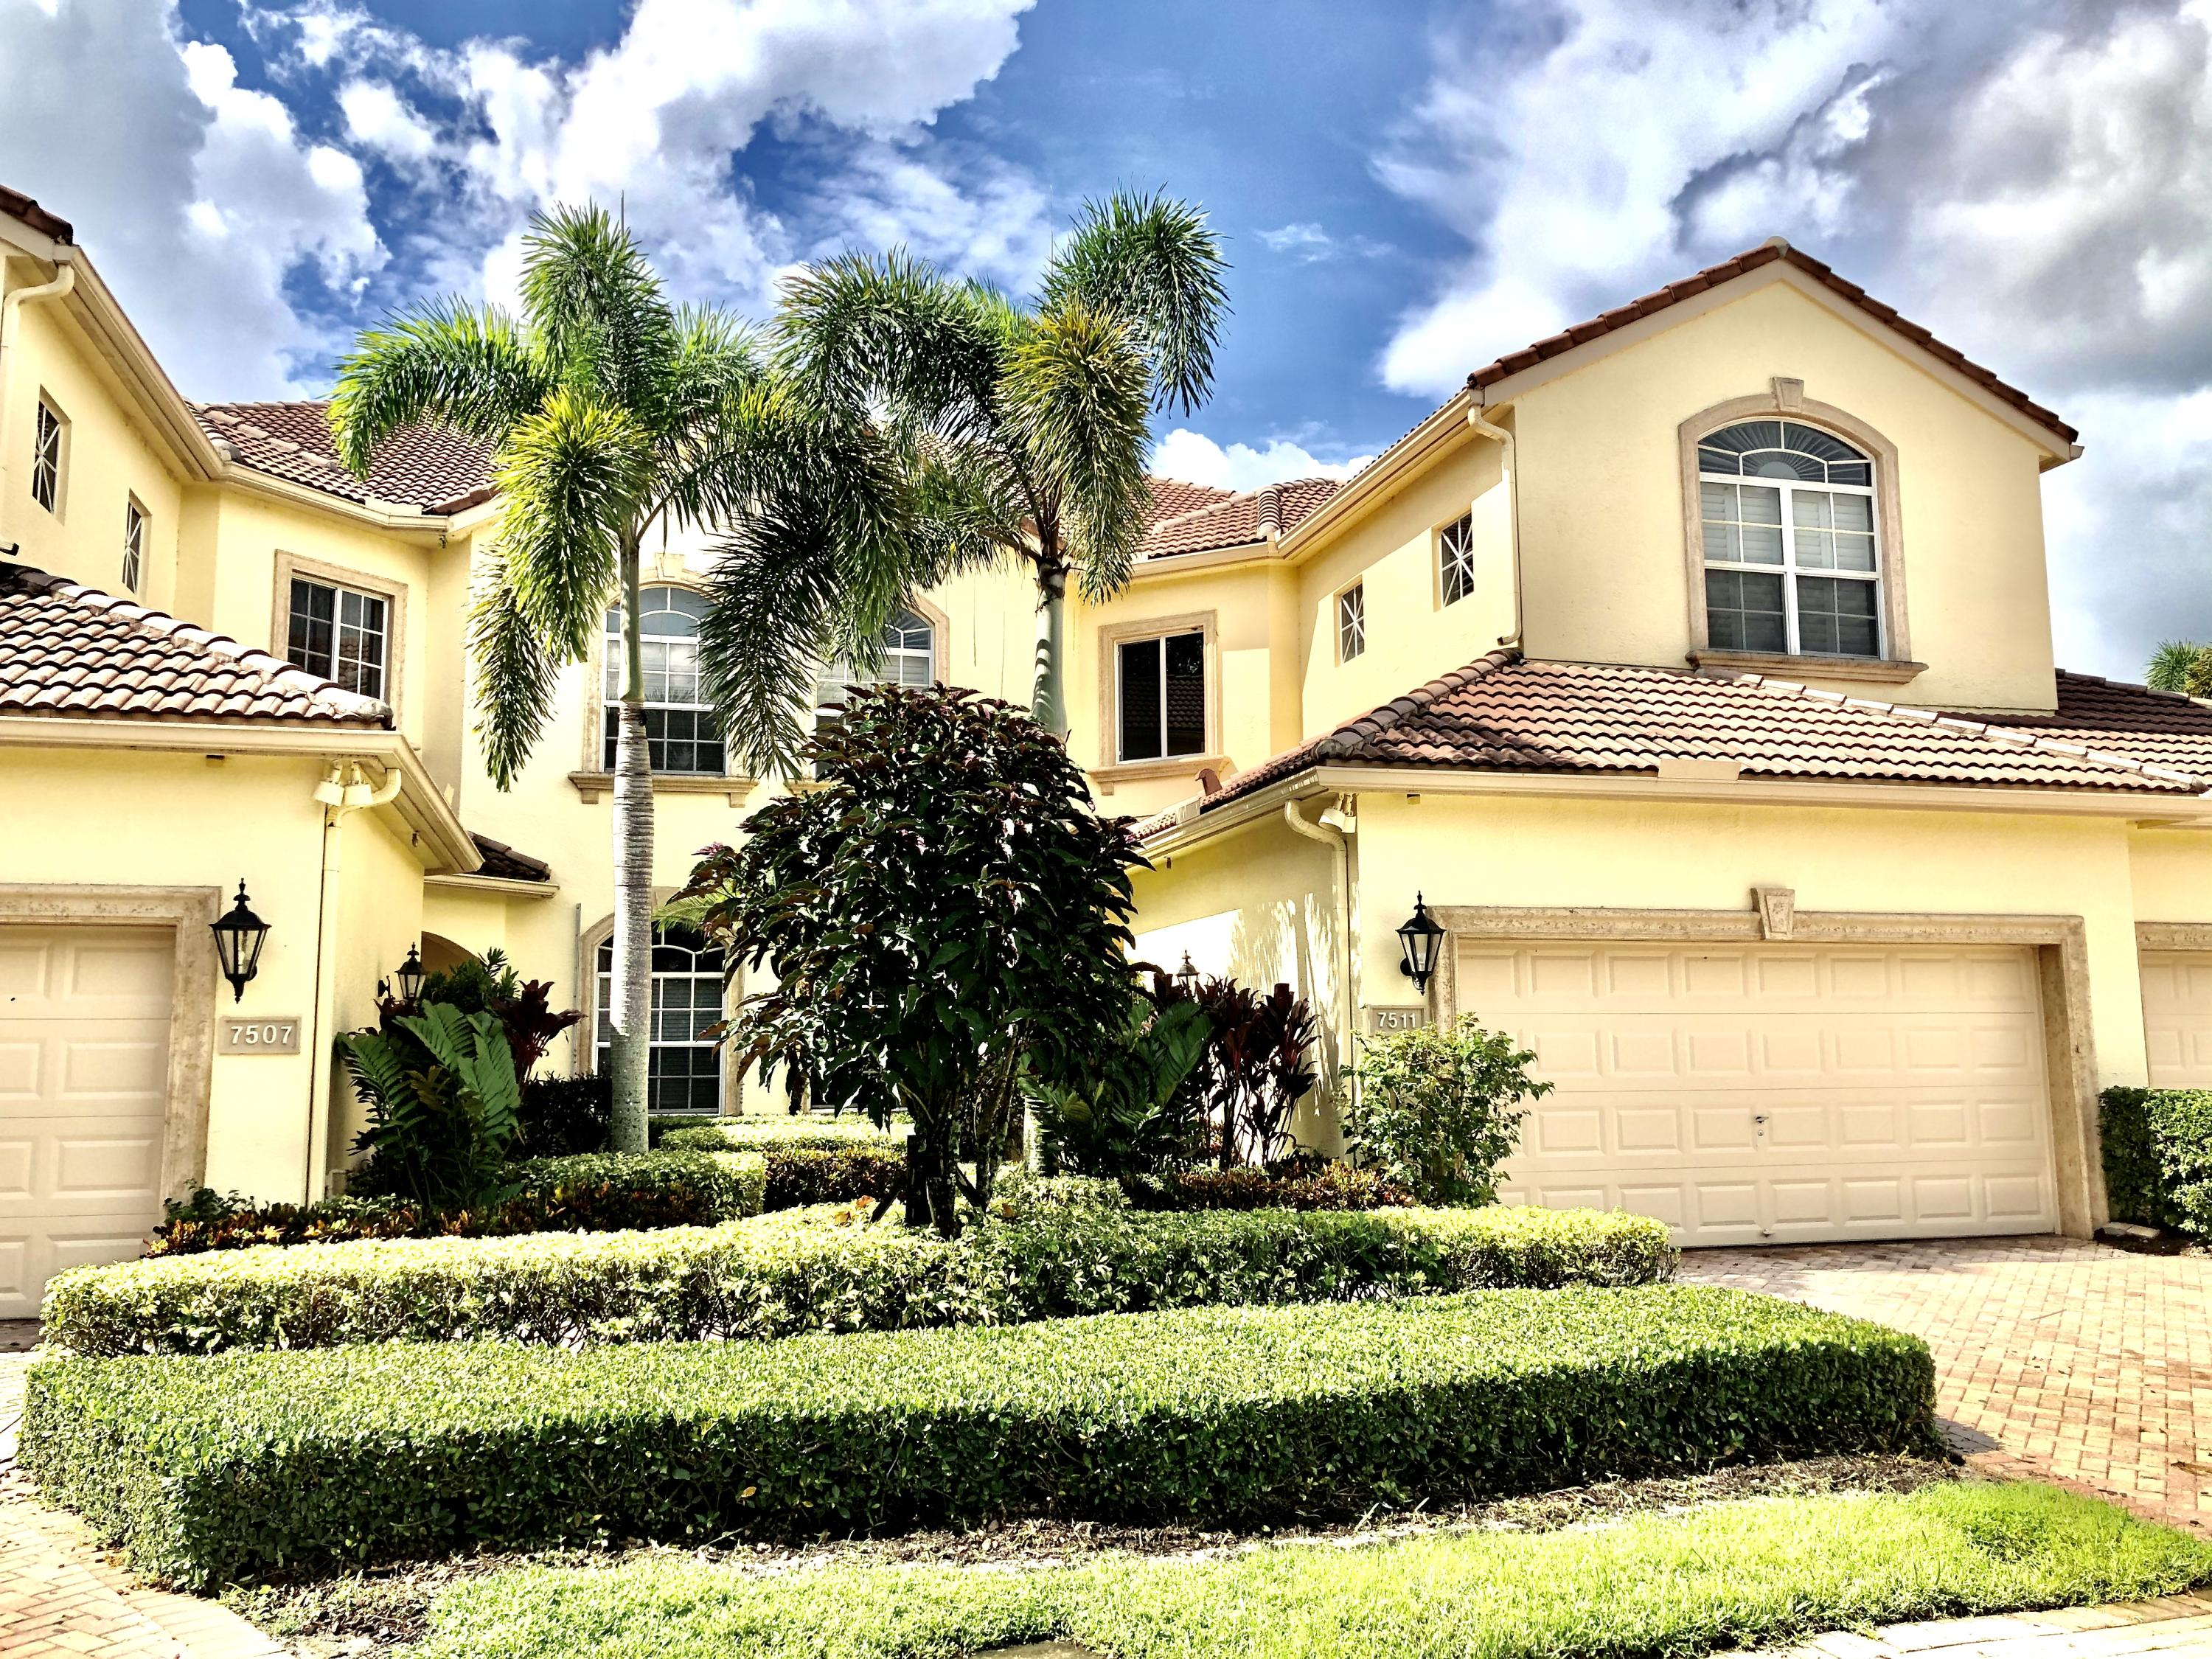 7511  Orchid Hammock Drive  For Sale 10648451, FL